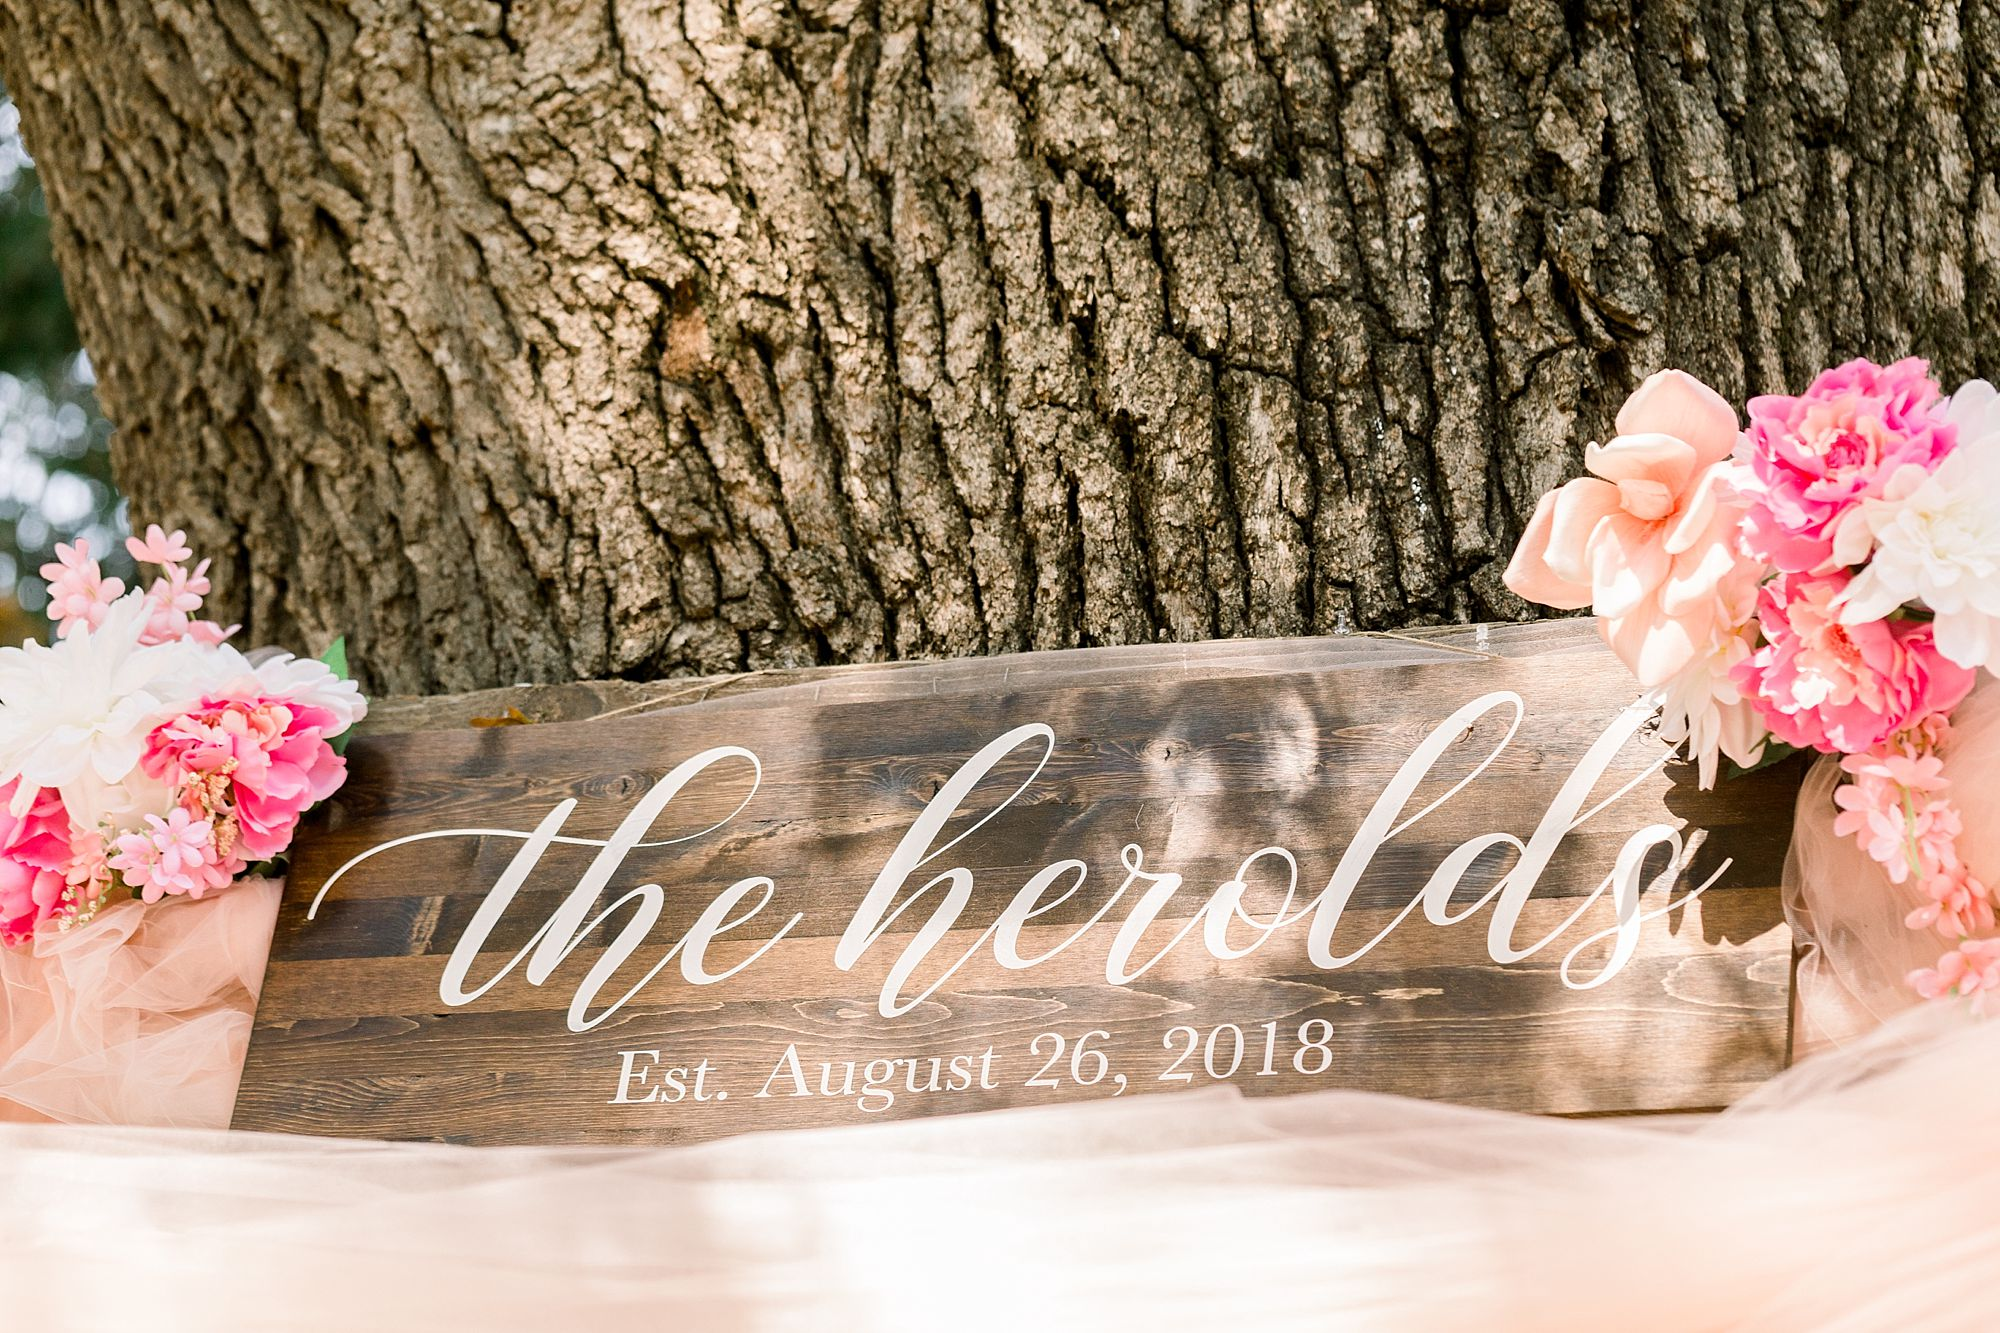 Bishops Pumpkin Farm Wedding - Annie and Logan - Ashley Baumgartner - Wheatland Wedding Photographer_0021.jpg